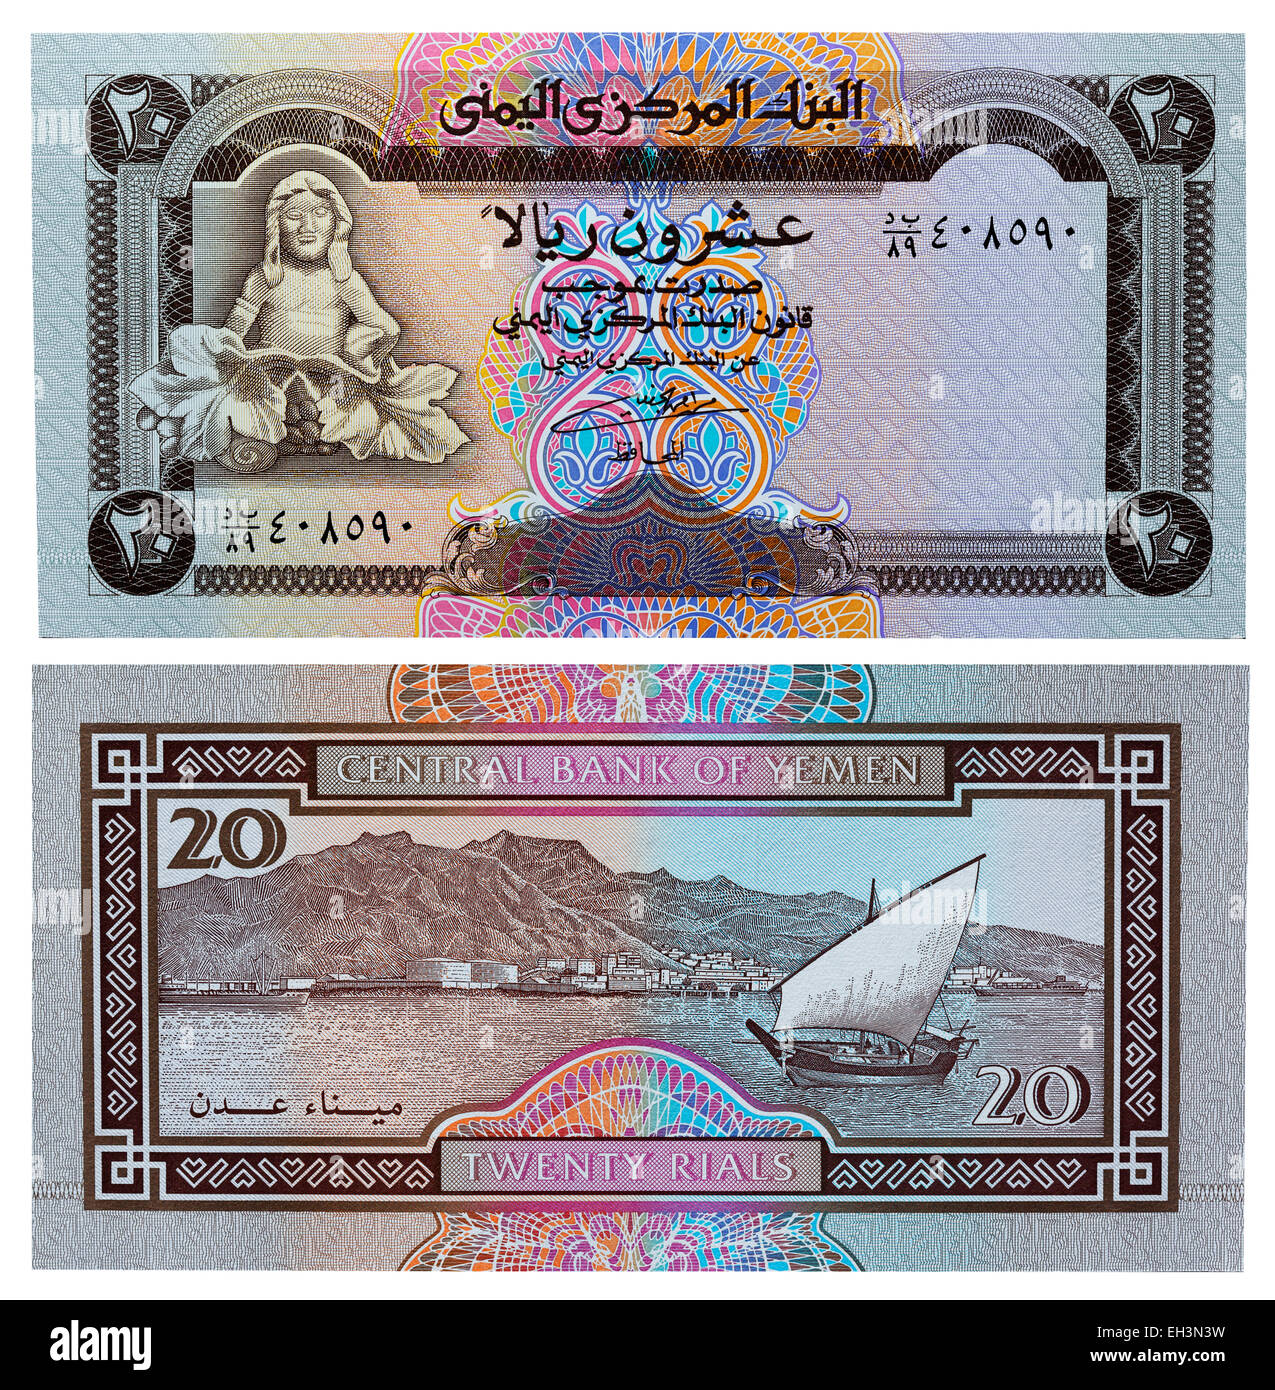 20 rials banknote, Sculpture of Dionysus with grapes, Aden Harbour, Dhow sailboat, Yemen, 1995 - Stock Image